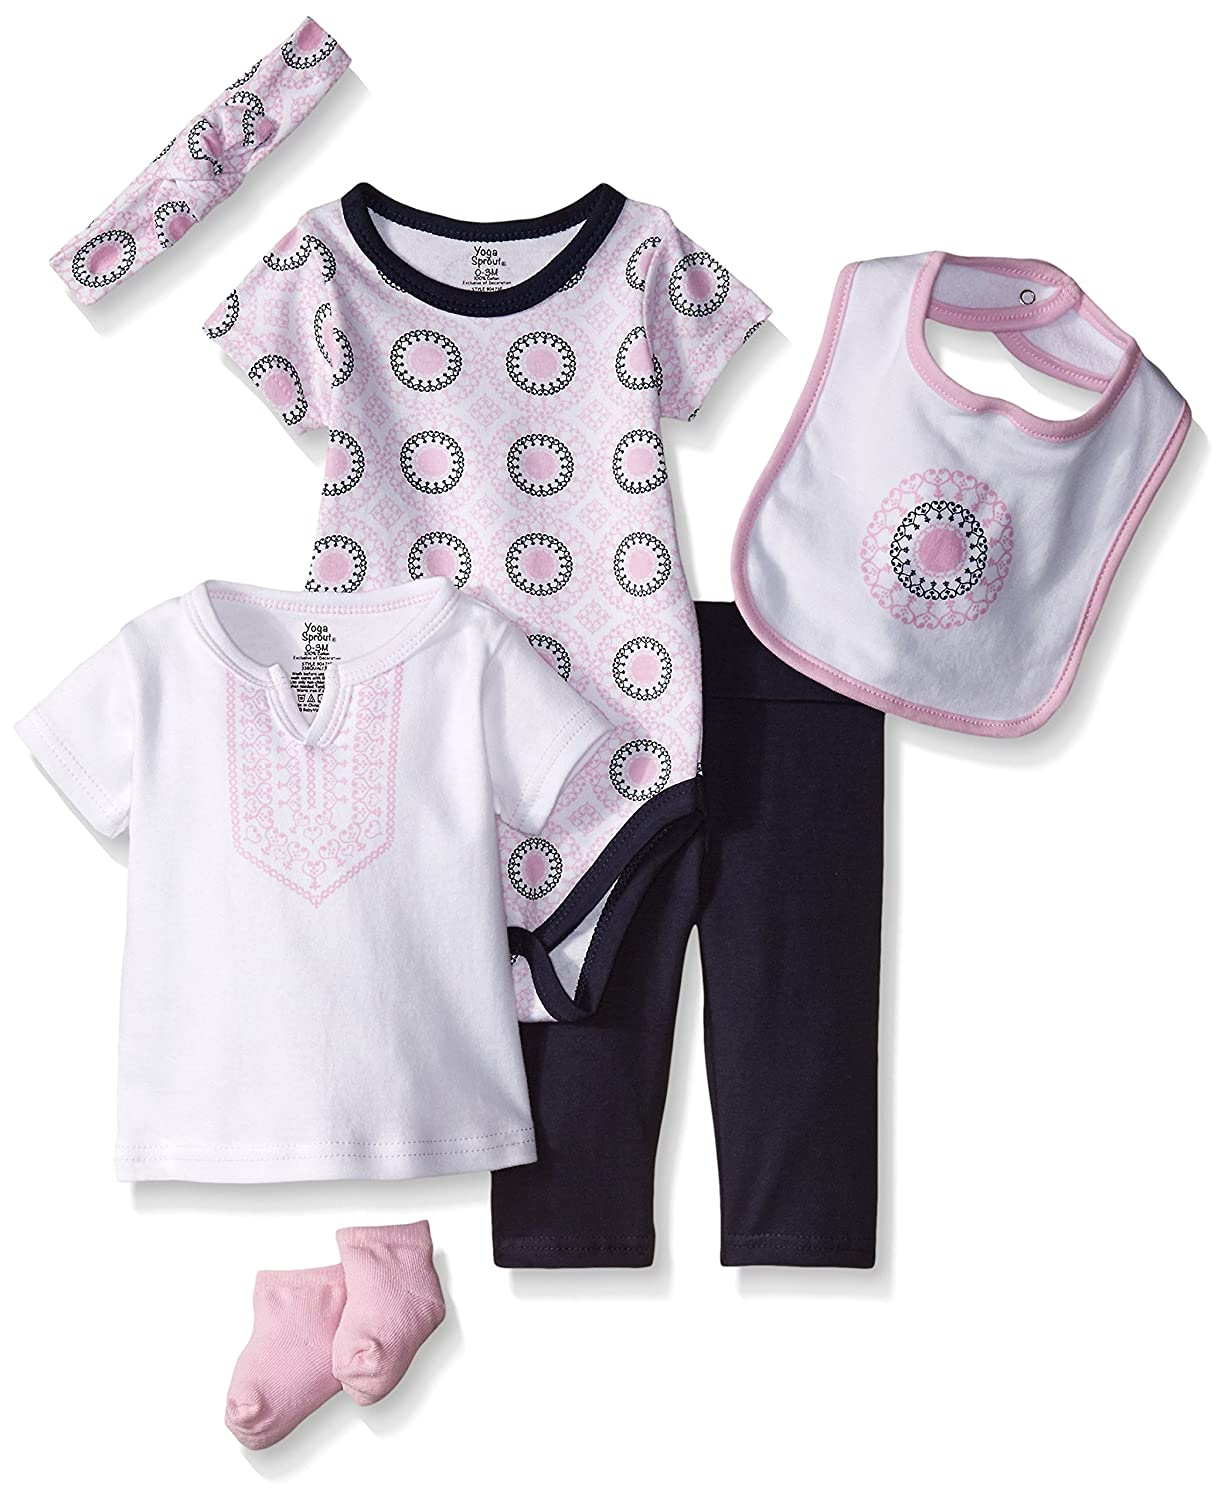 Yoga Sprout Baby Girls 6 Piece Layette Set